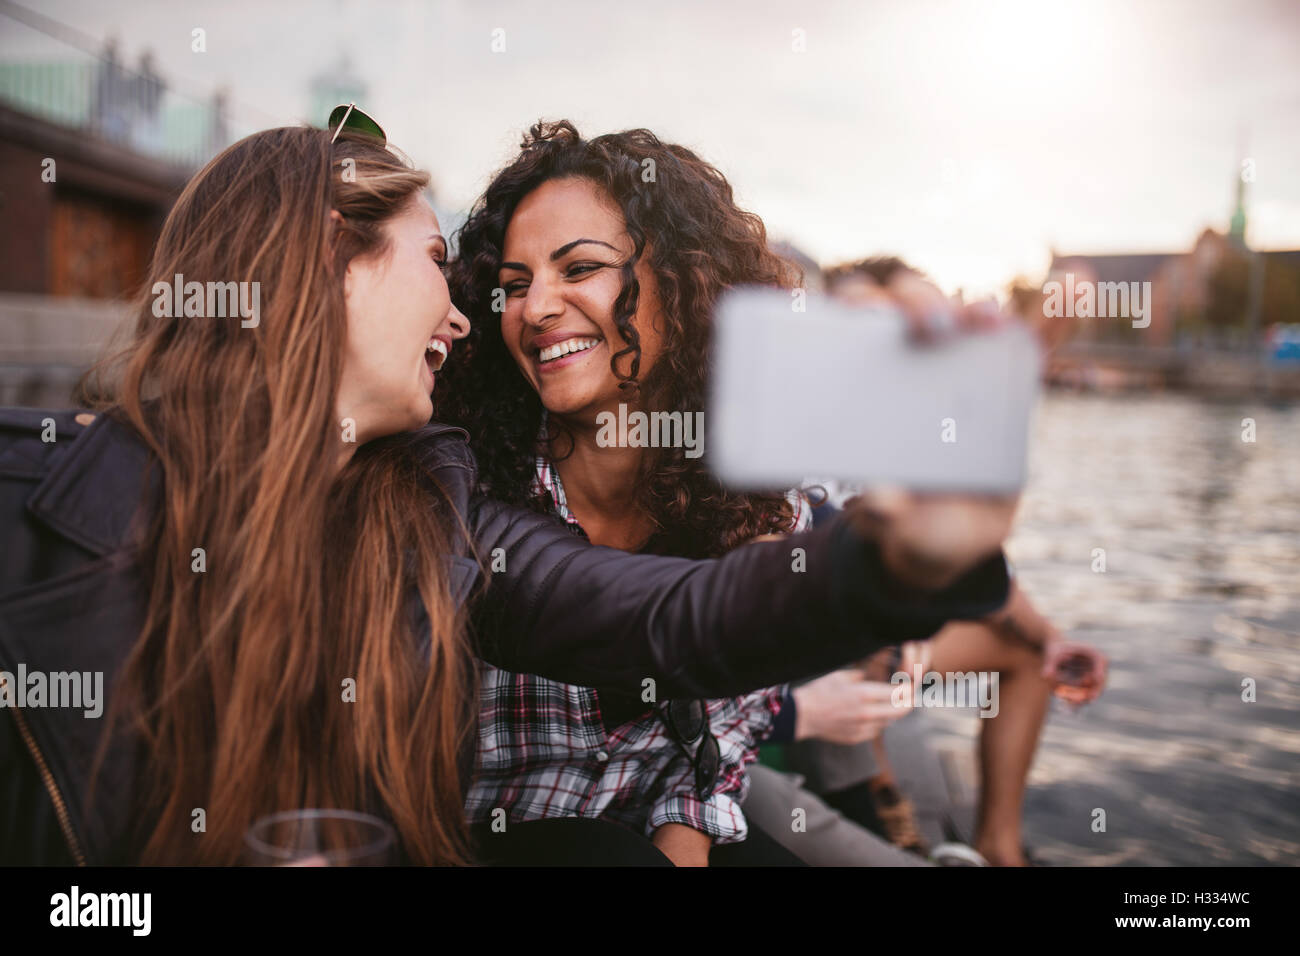 Cheerful young women friends taking selfie by the lake. Best friends having fun together. - Stock Image